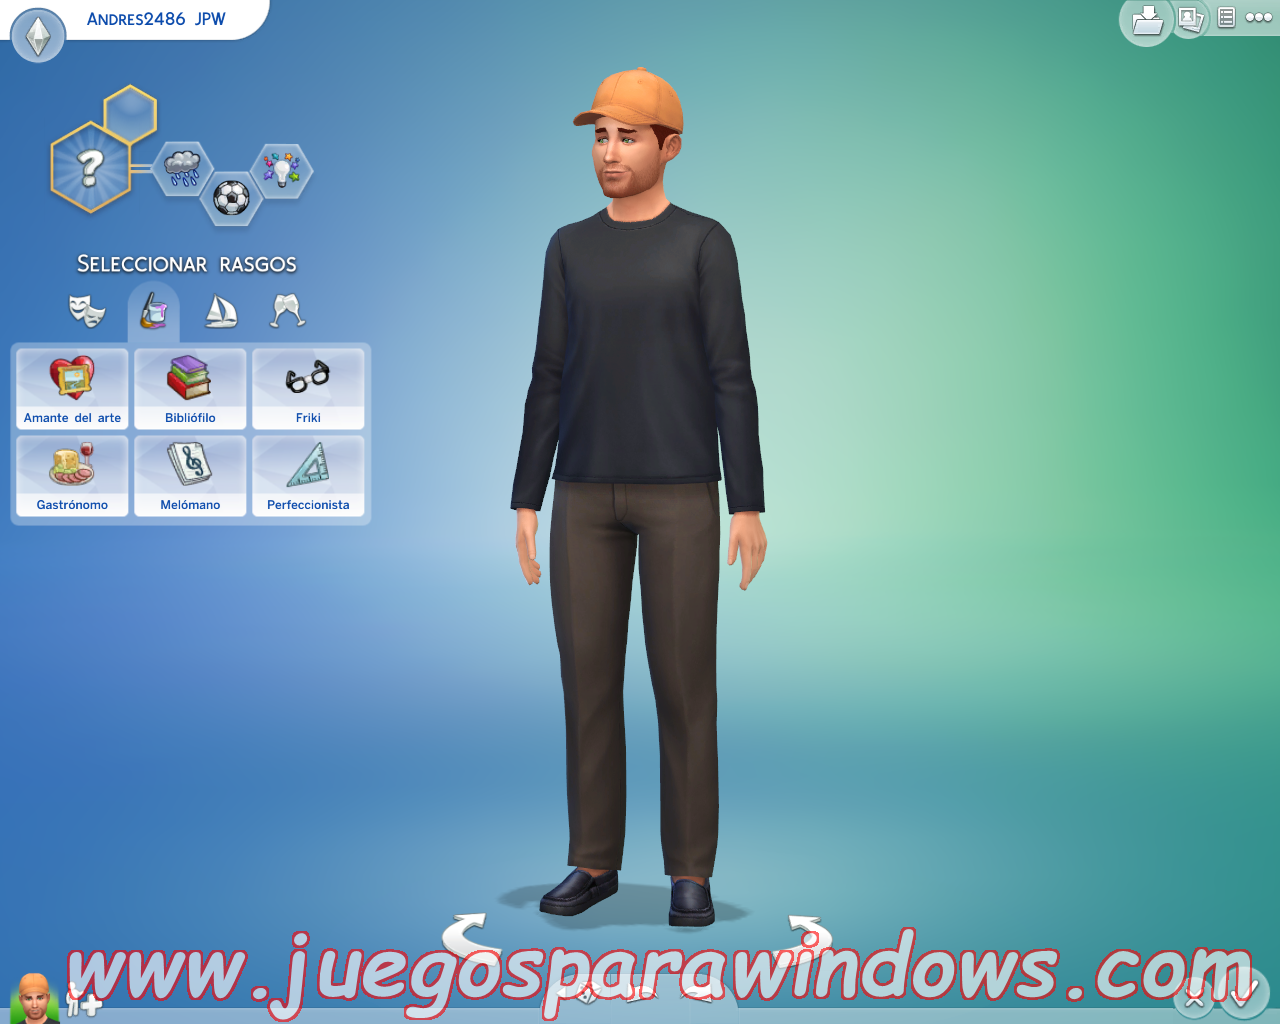 Los Sims 4 Digital Deluxe Edition ESPAÑOL PC Full + Update v1.4.83.1010 Incl DLC (RELOADED) 11